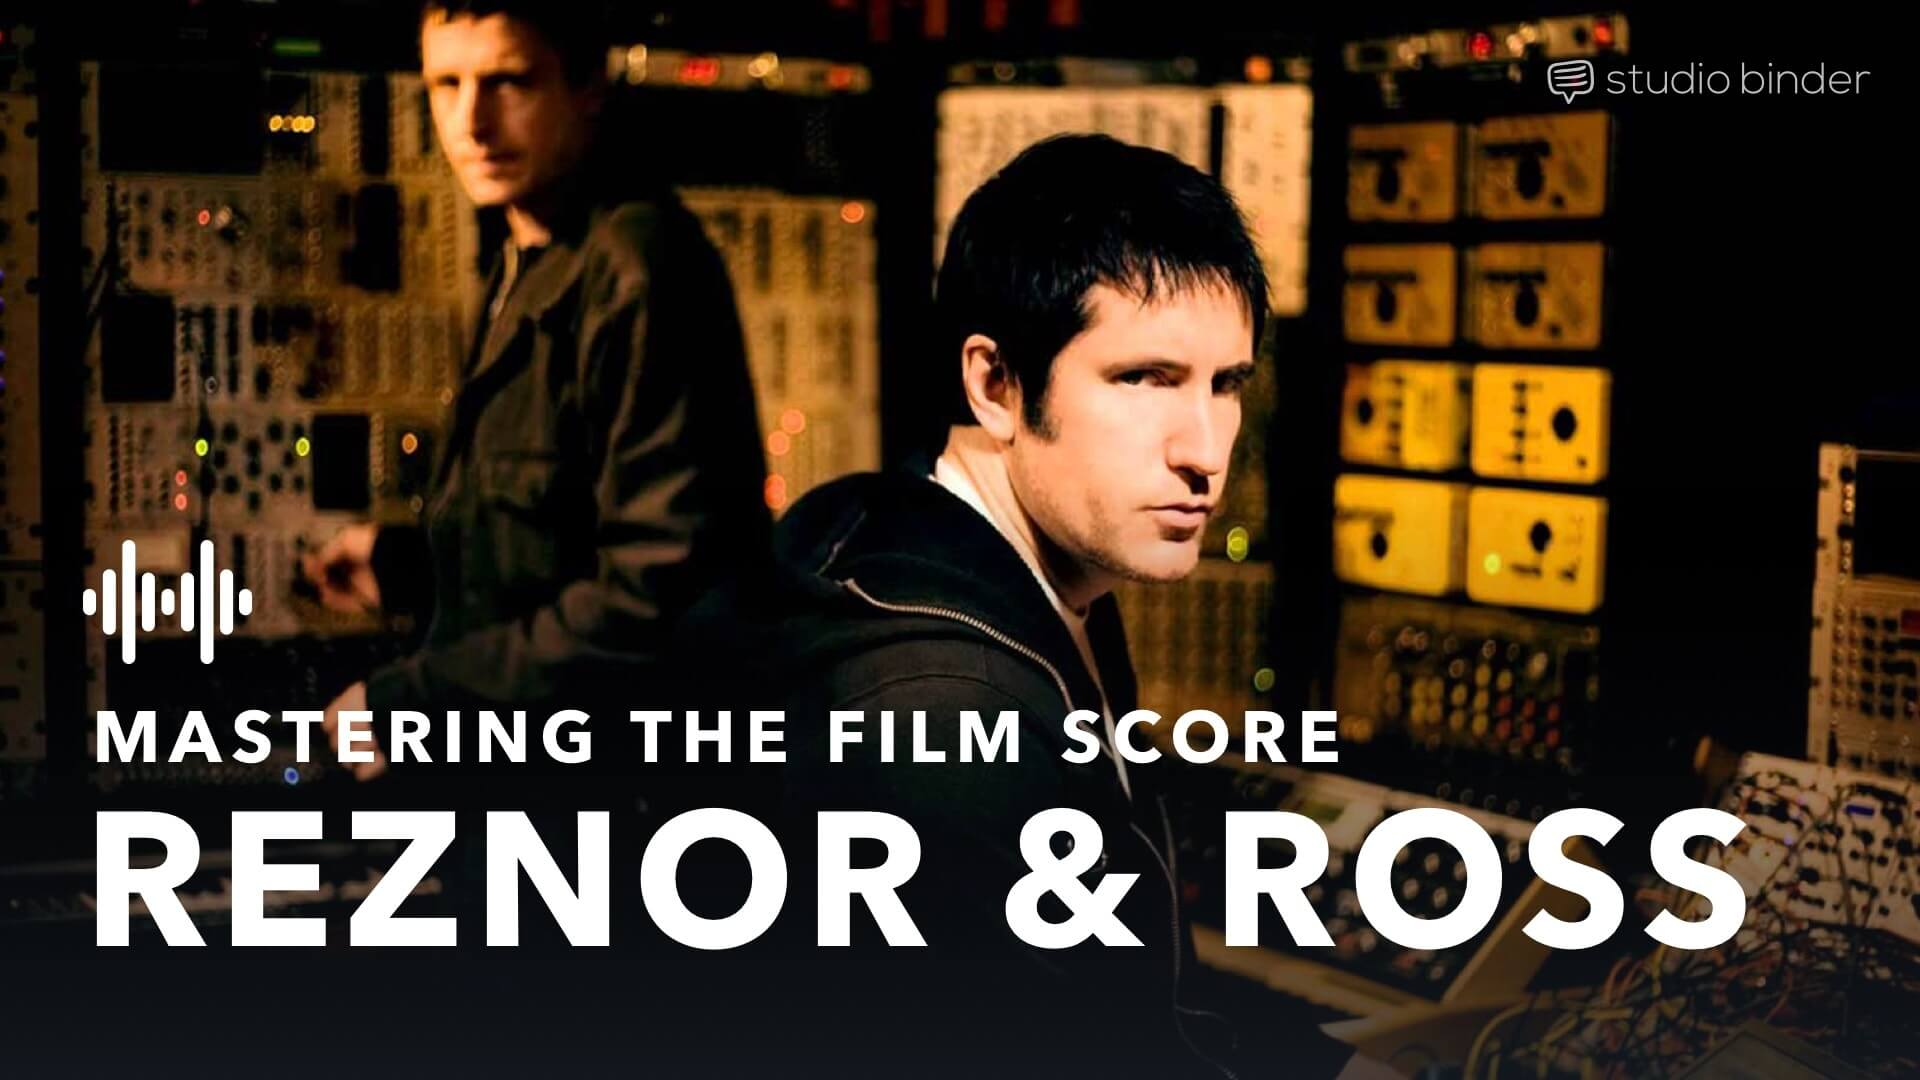 Trent Reznor and Atticus Ross are known for their unconventional compositions. Here are a few ways you can create a film score just like them.